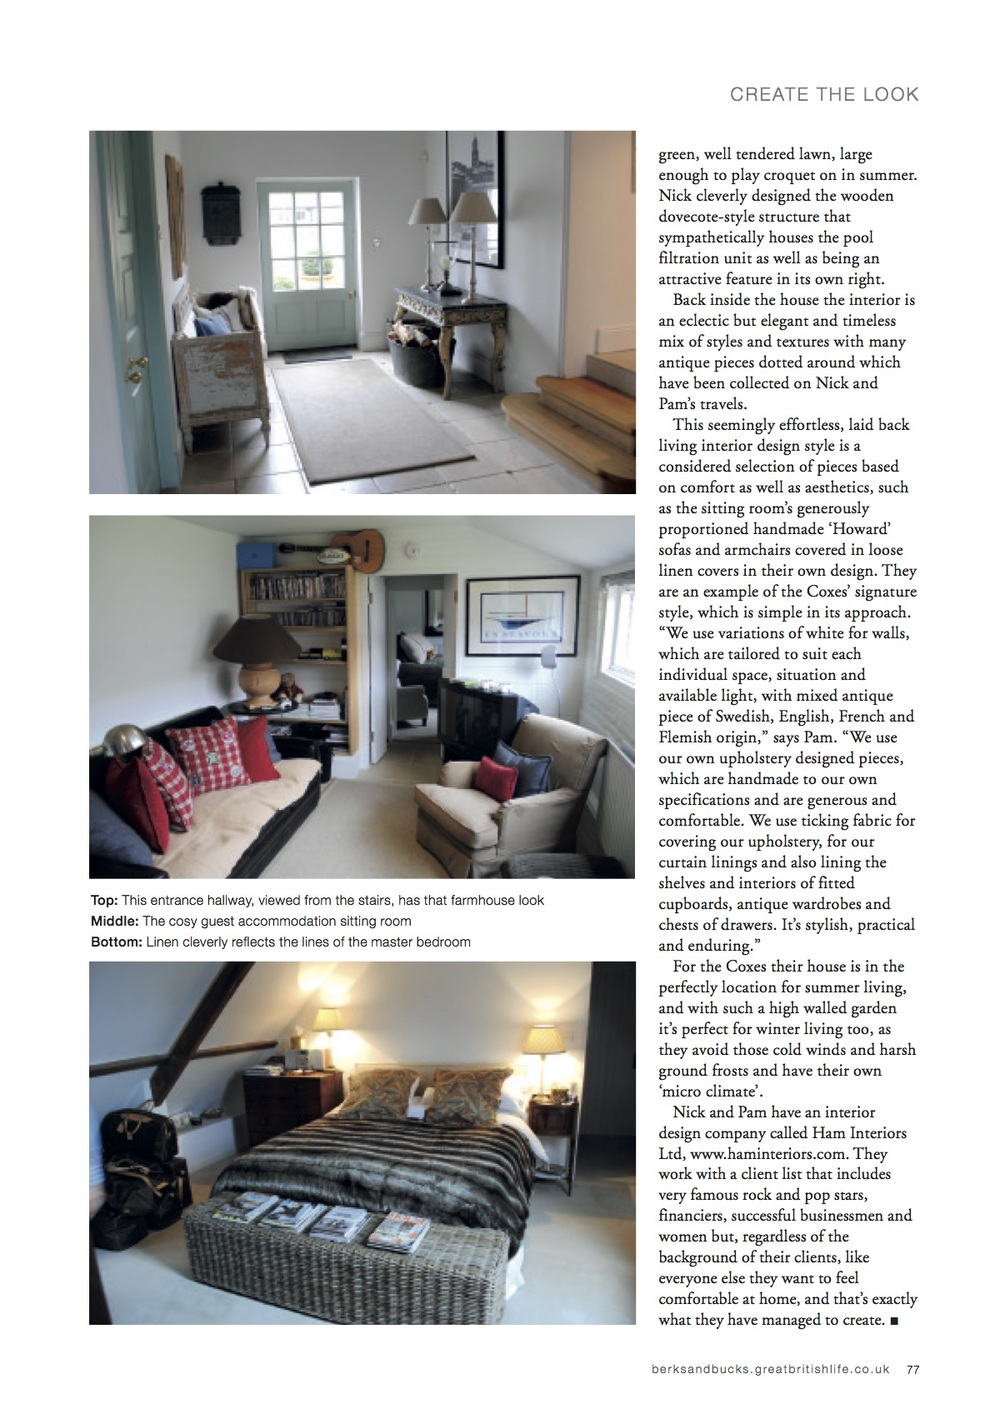 Ham Interiors June issue Berks & Bucks Life 2011 PG5.jpg